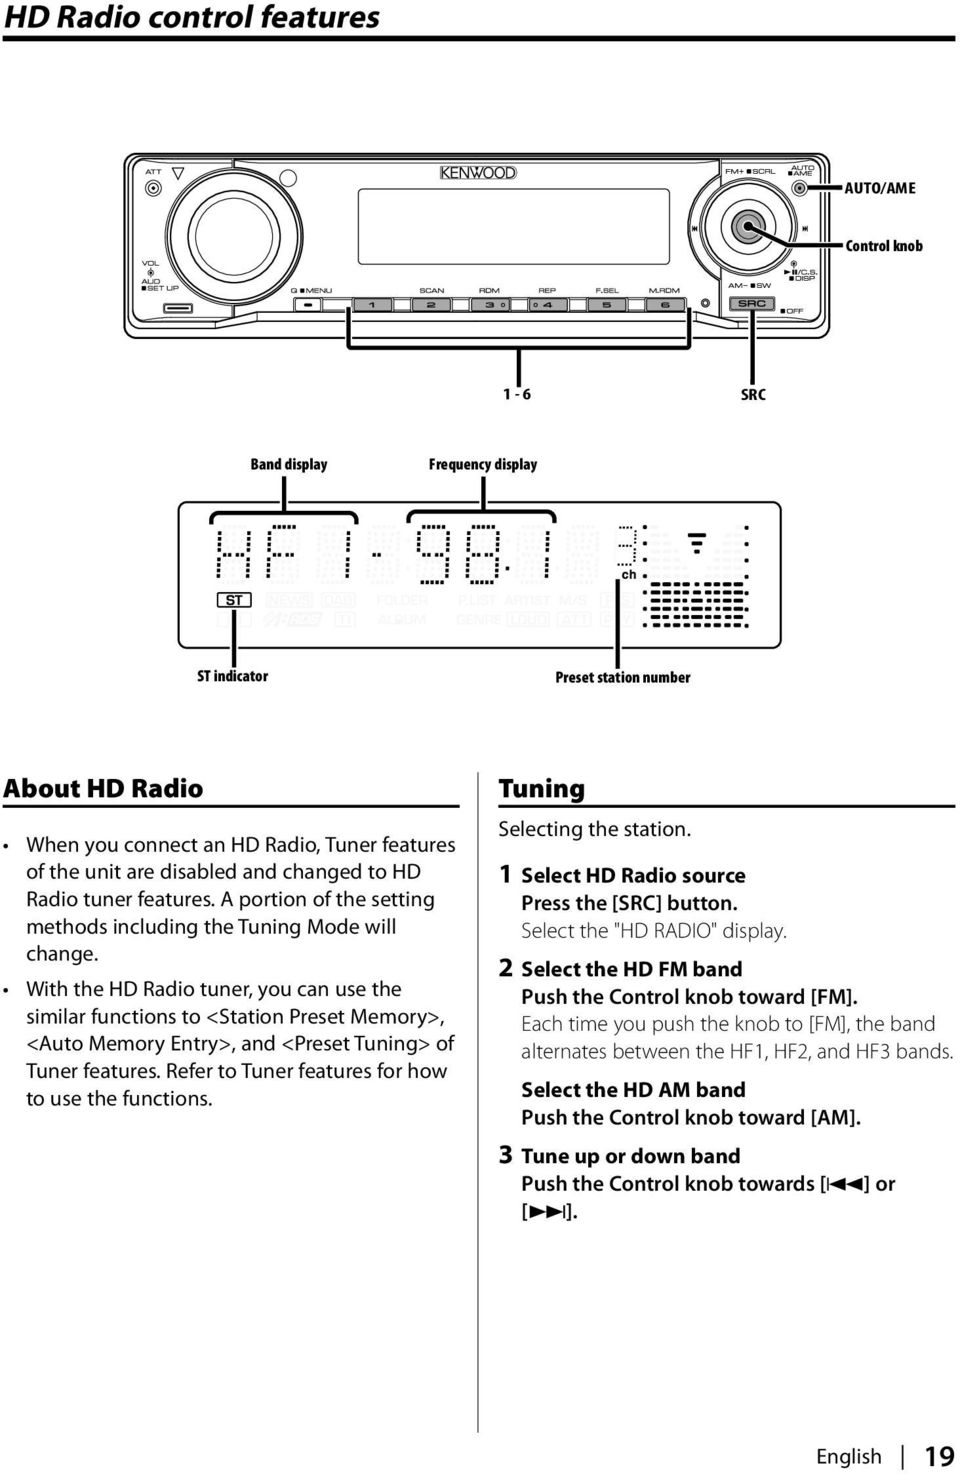 Kenwood Kdc Mp332 Wiring Diagram Mp4032 Pdf With The Hd Radio Tuner You Can Use Similar Functions To Station Preset